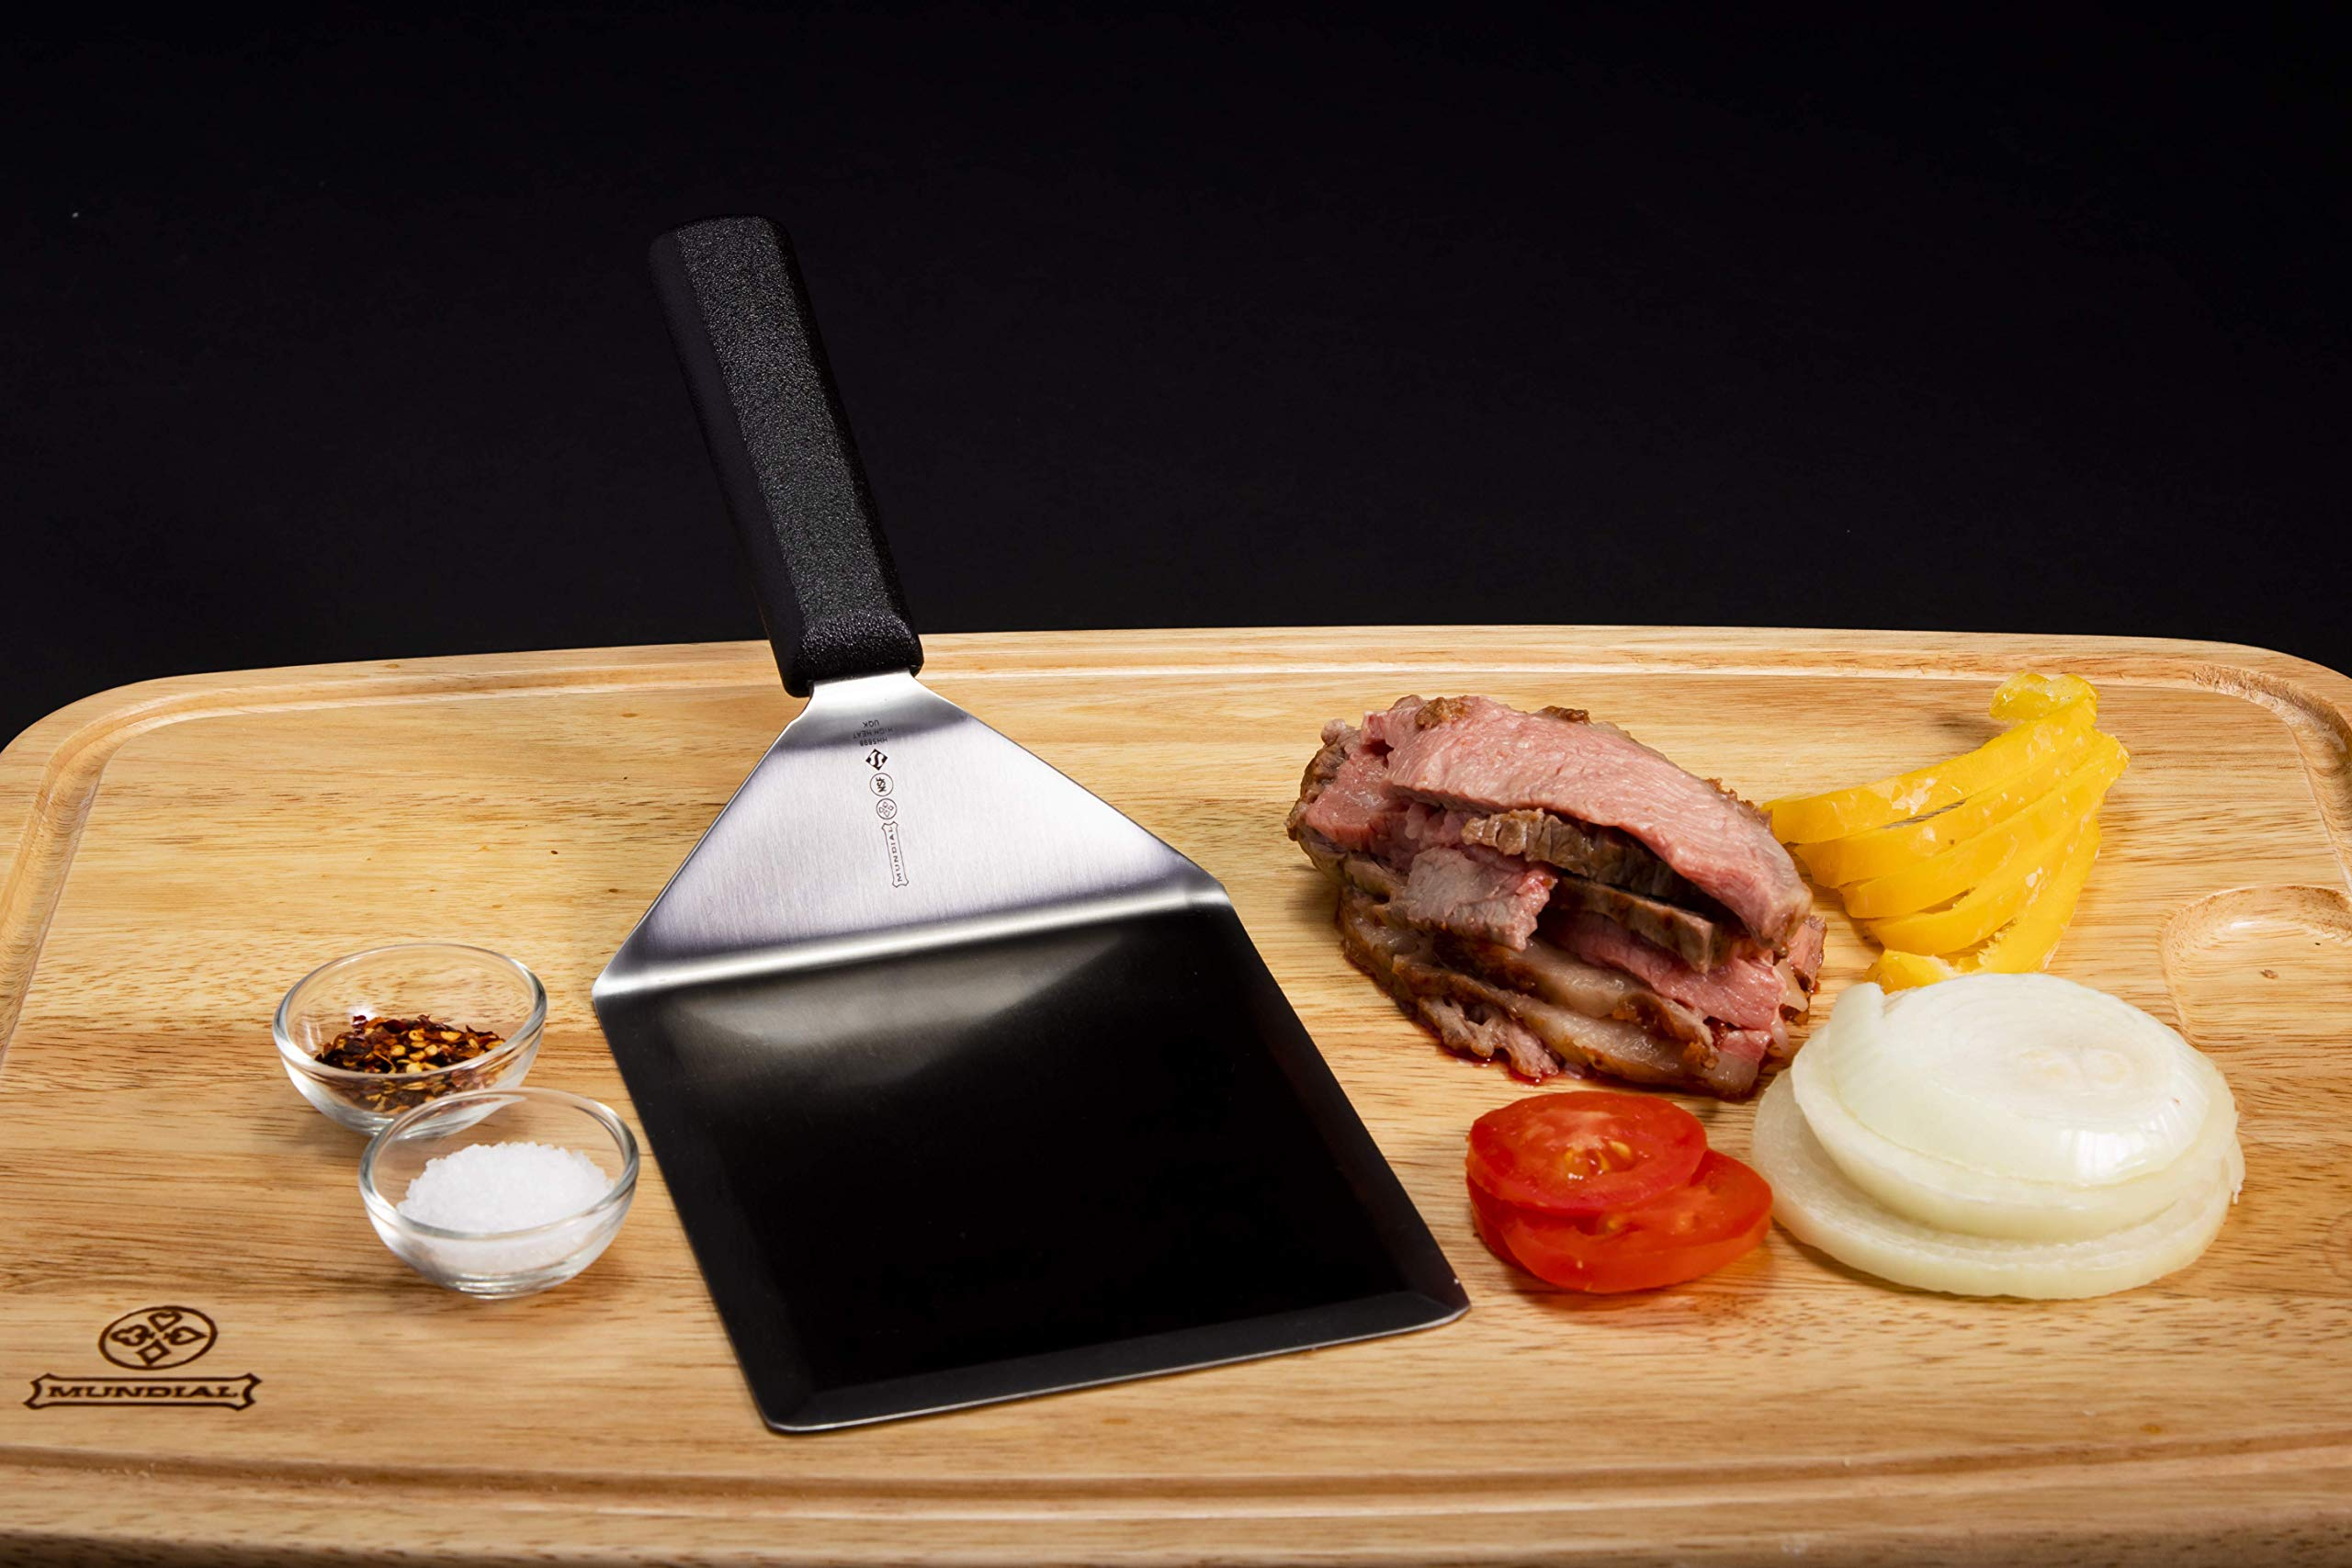 Mundial 5698HH Heat Resistant Steak and Hamburger Turner/Spatula 6-inch by 5-inch with Black Handle